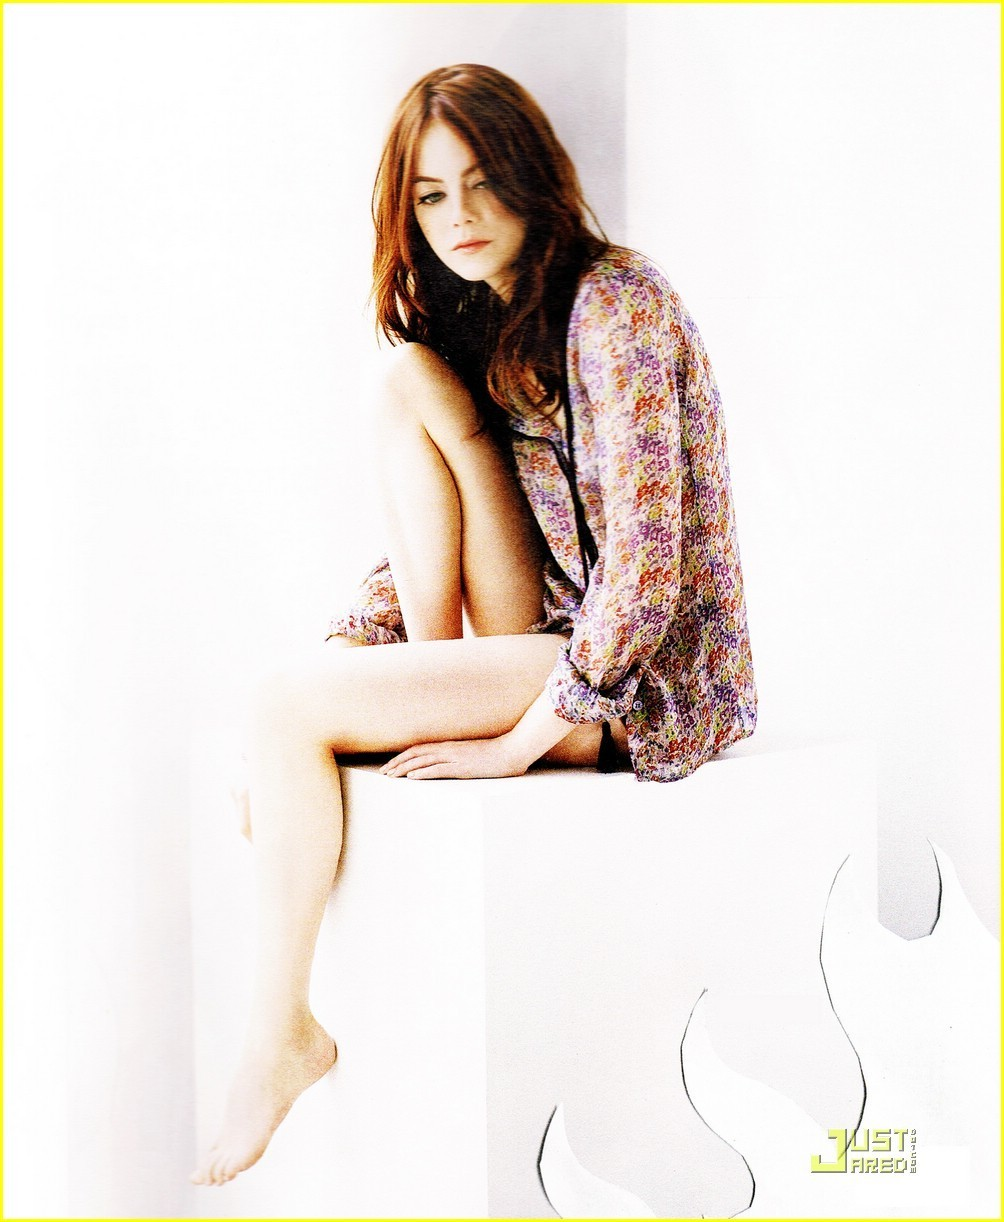 EMMA STONE - EMMA STONE Photo (11816056) - Fanpop